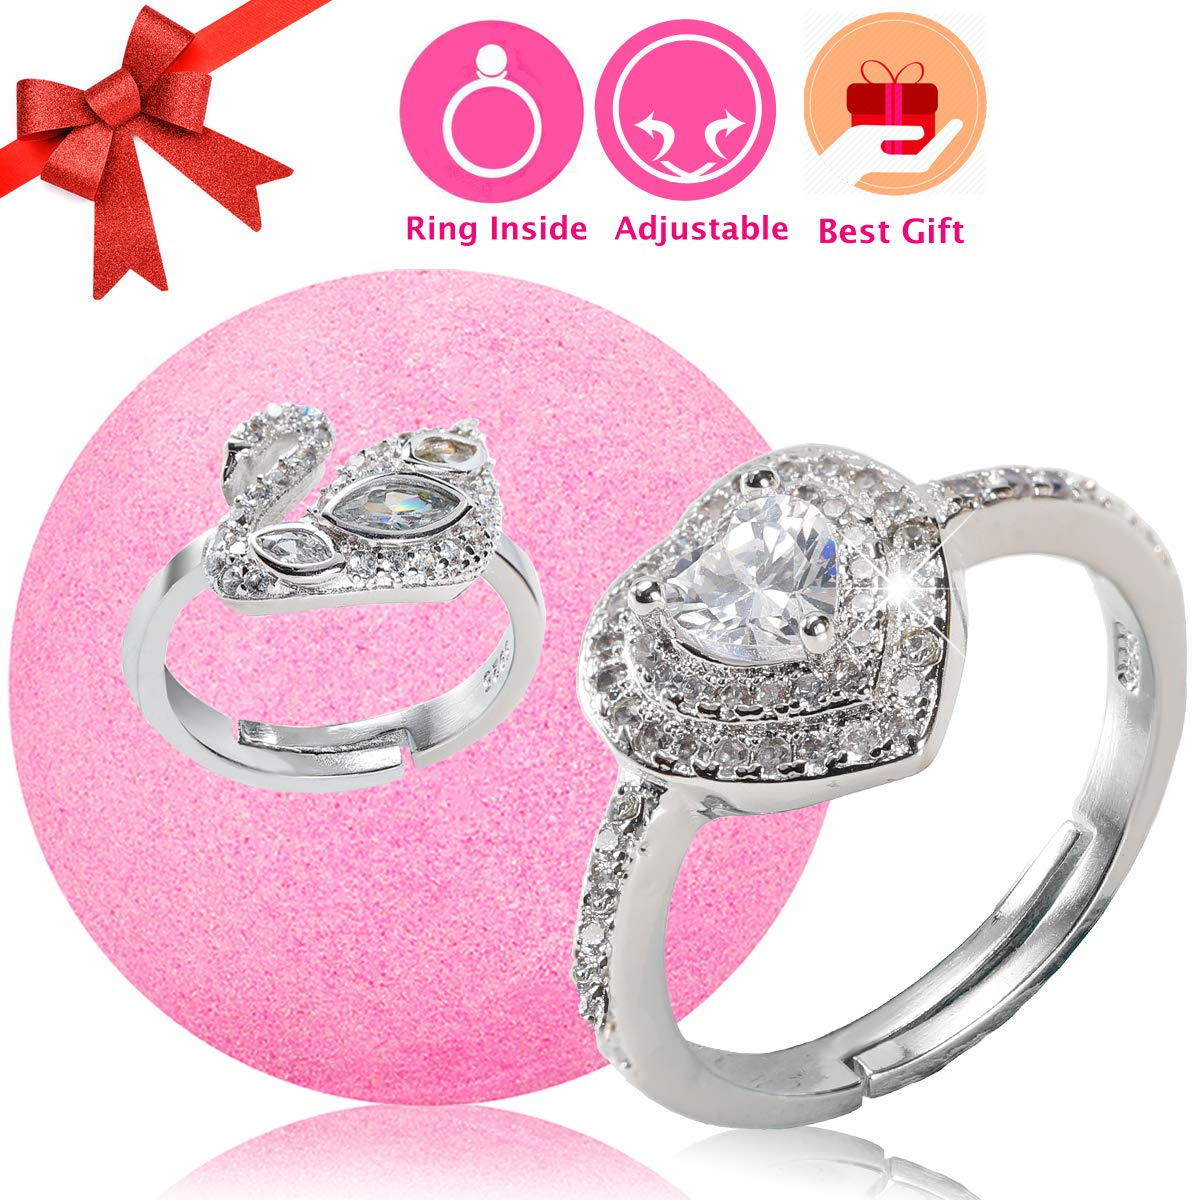 Amazon.com : Jewelry Bath Bomb with Surprise Ring Prizes Inside for ...